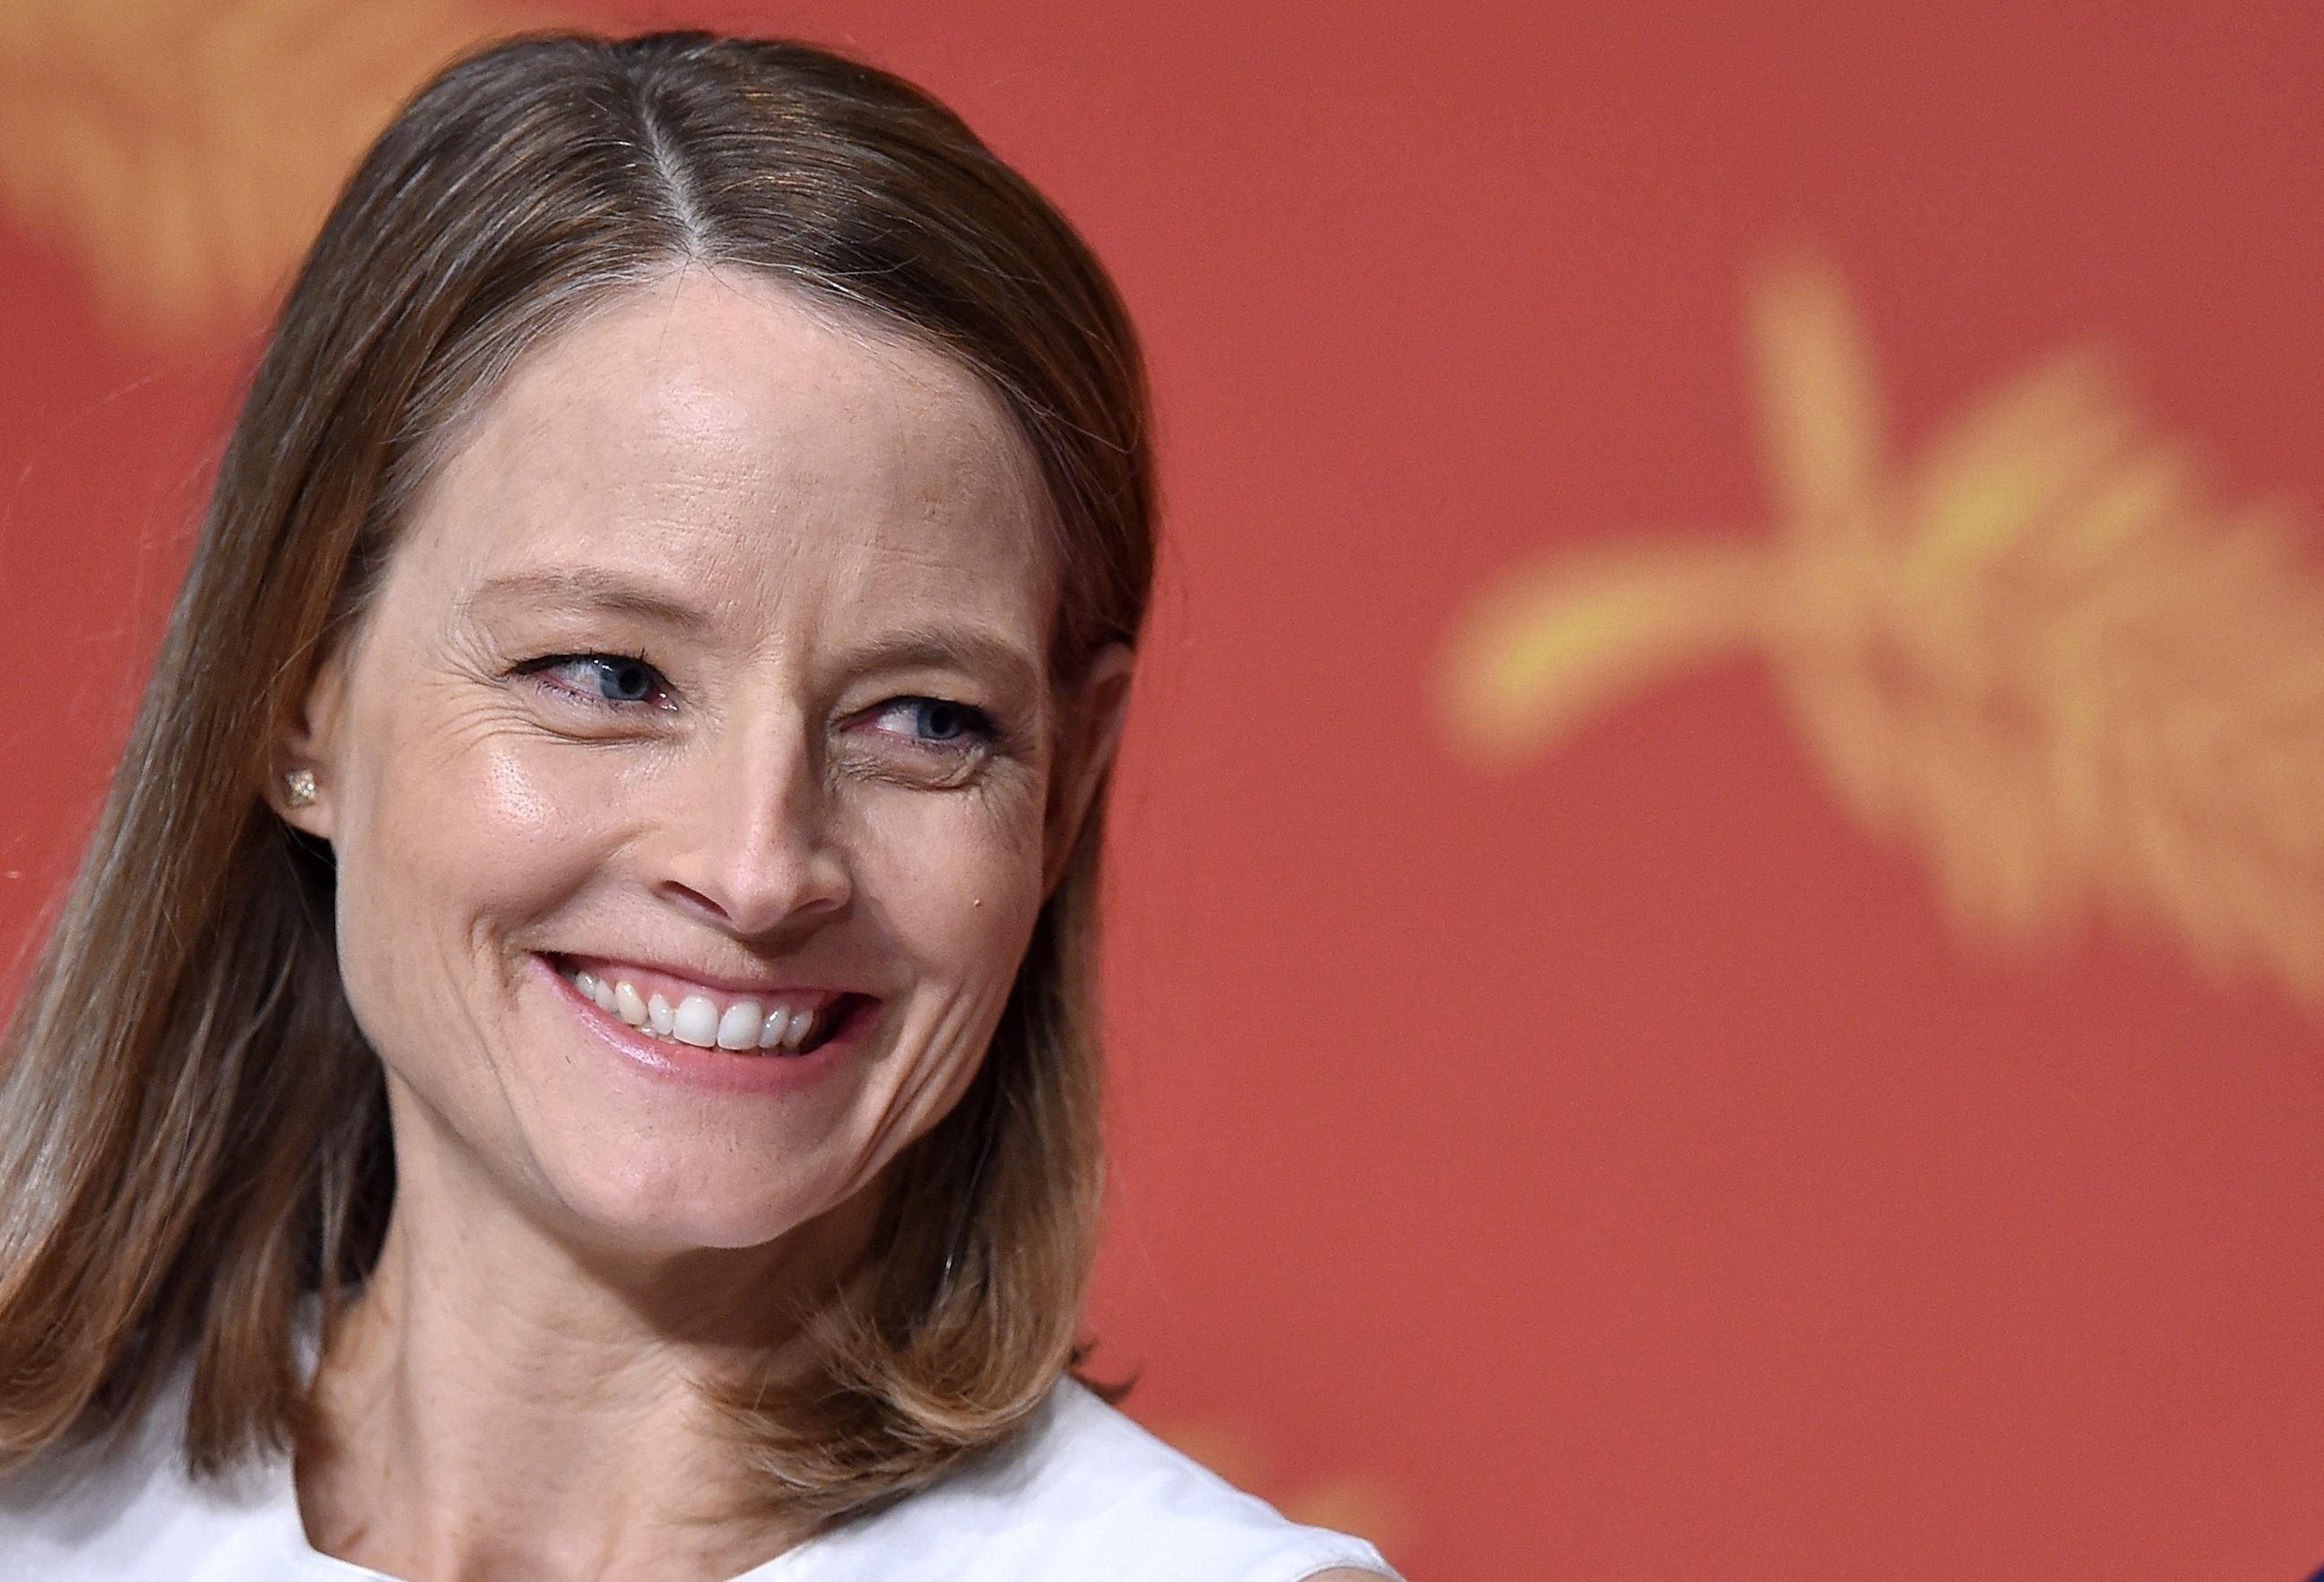 U.S. director and actress Jodie Foster smiles during a press conference for the film 'Money Monster' at the 69th Cannes Film Festival in Cannes, southern France, May 12, 2016. (AFP Photo)